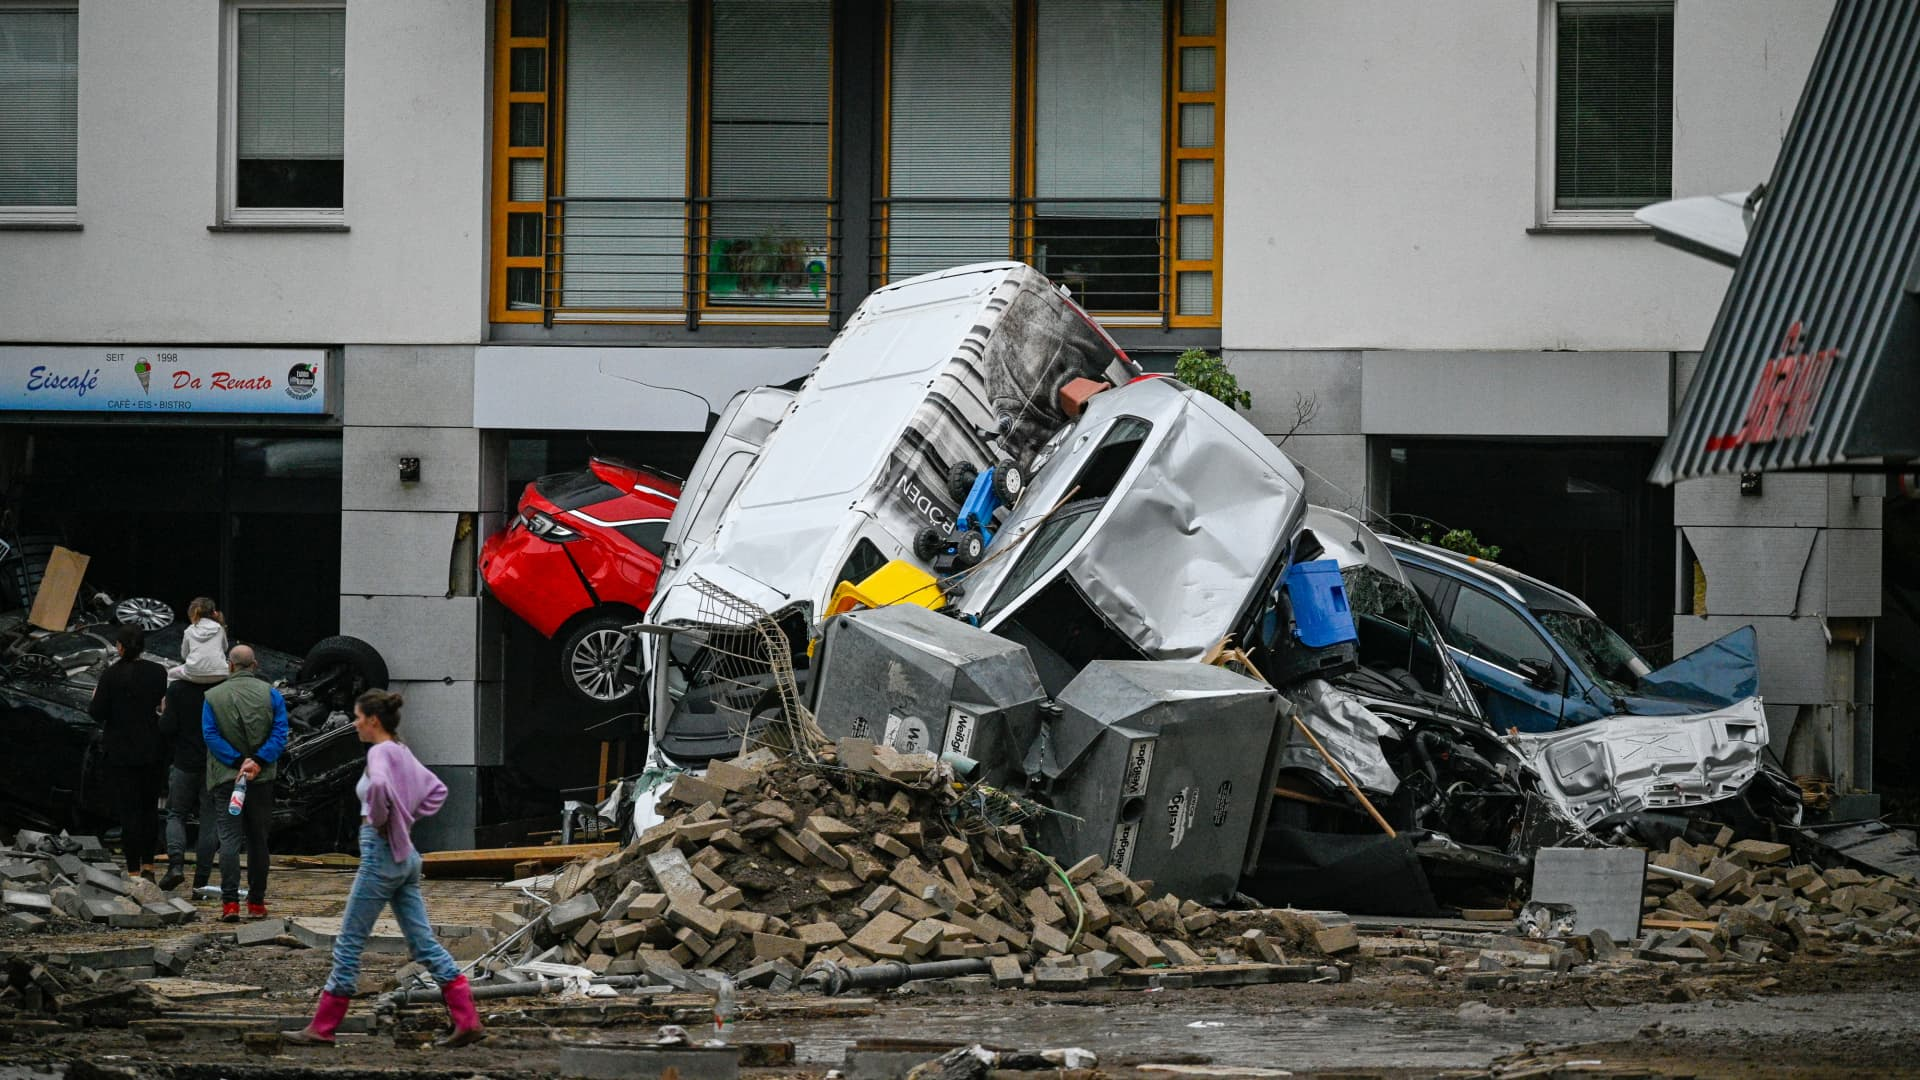 BAD NEUENAHR, GERMANY - JULY 16: Streets and residences damaged by the flooding of the Ahr River are seen on July 16, 2021 in Bad Neuenahr - Ahrweiler, Germany.